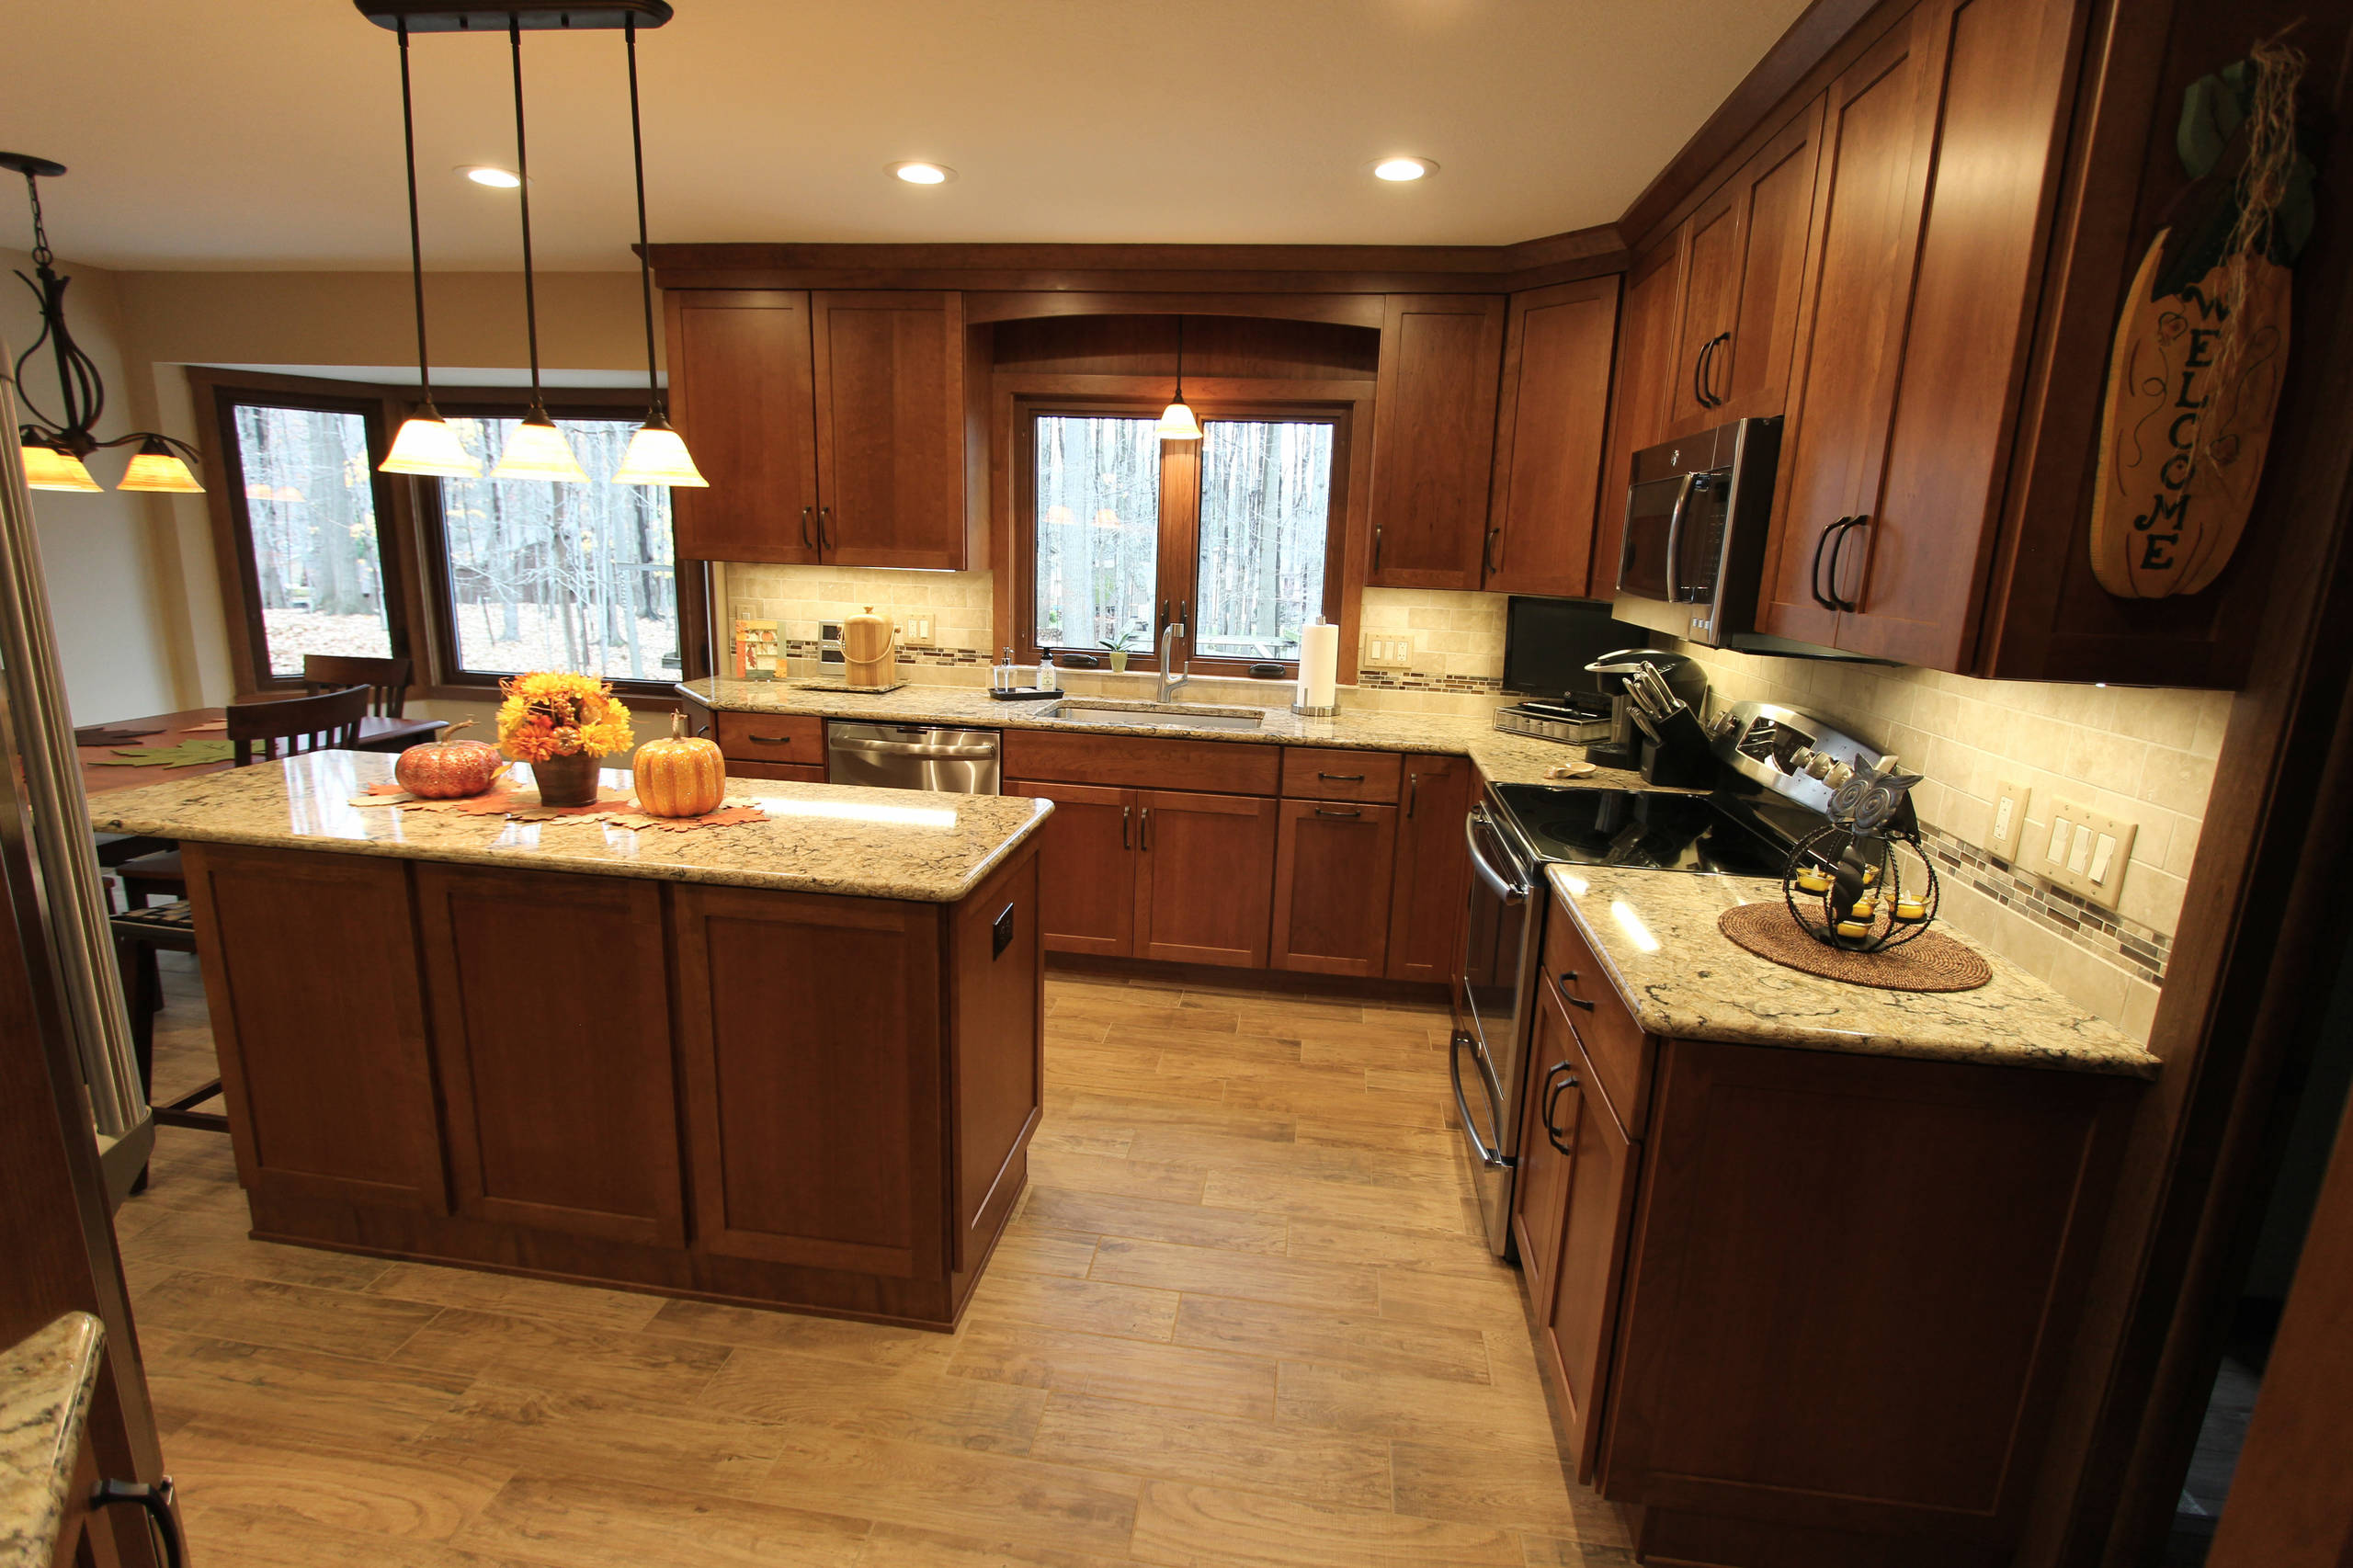 Cherry Cabinets With Quartz Countertop